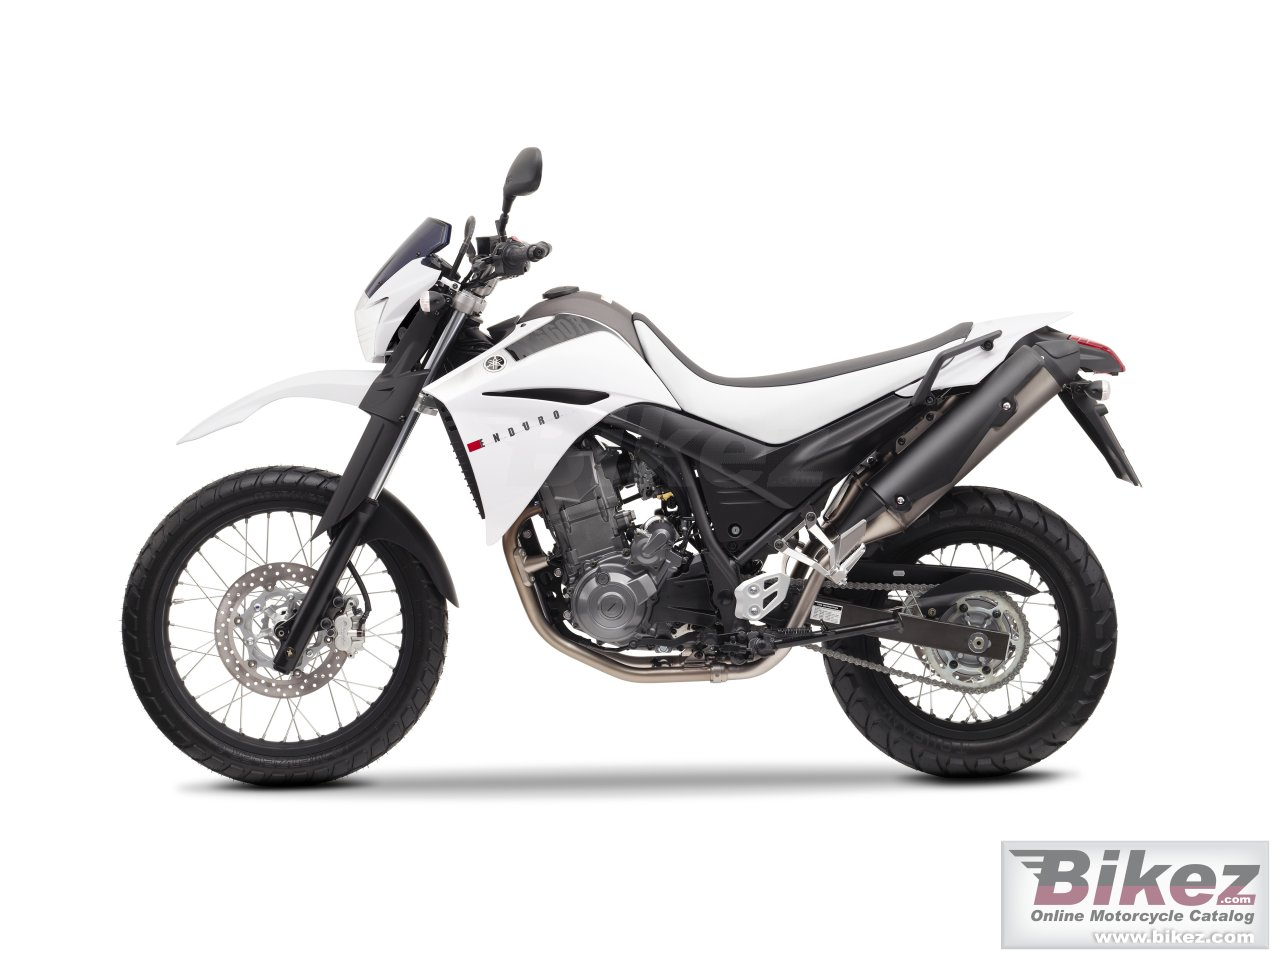 Big Yamaha xt660r picture and wallpaper from Bikez.com